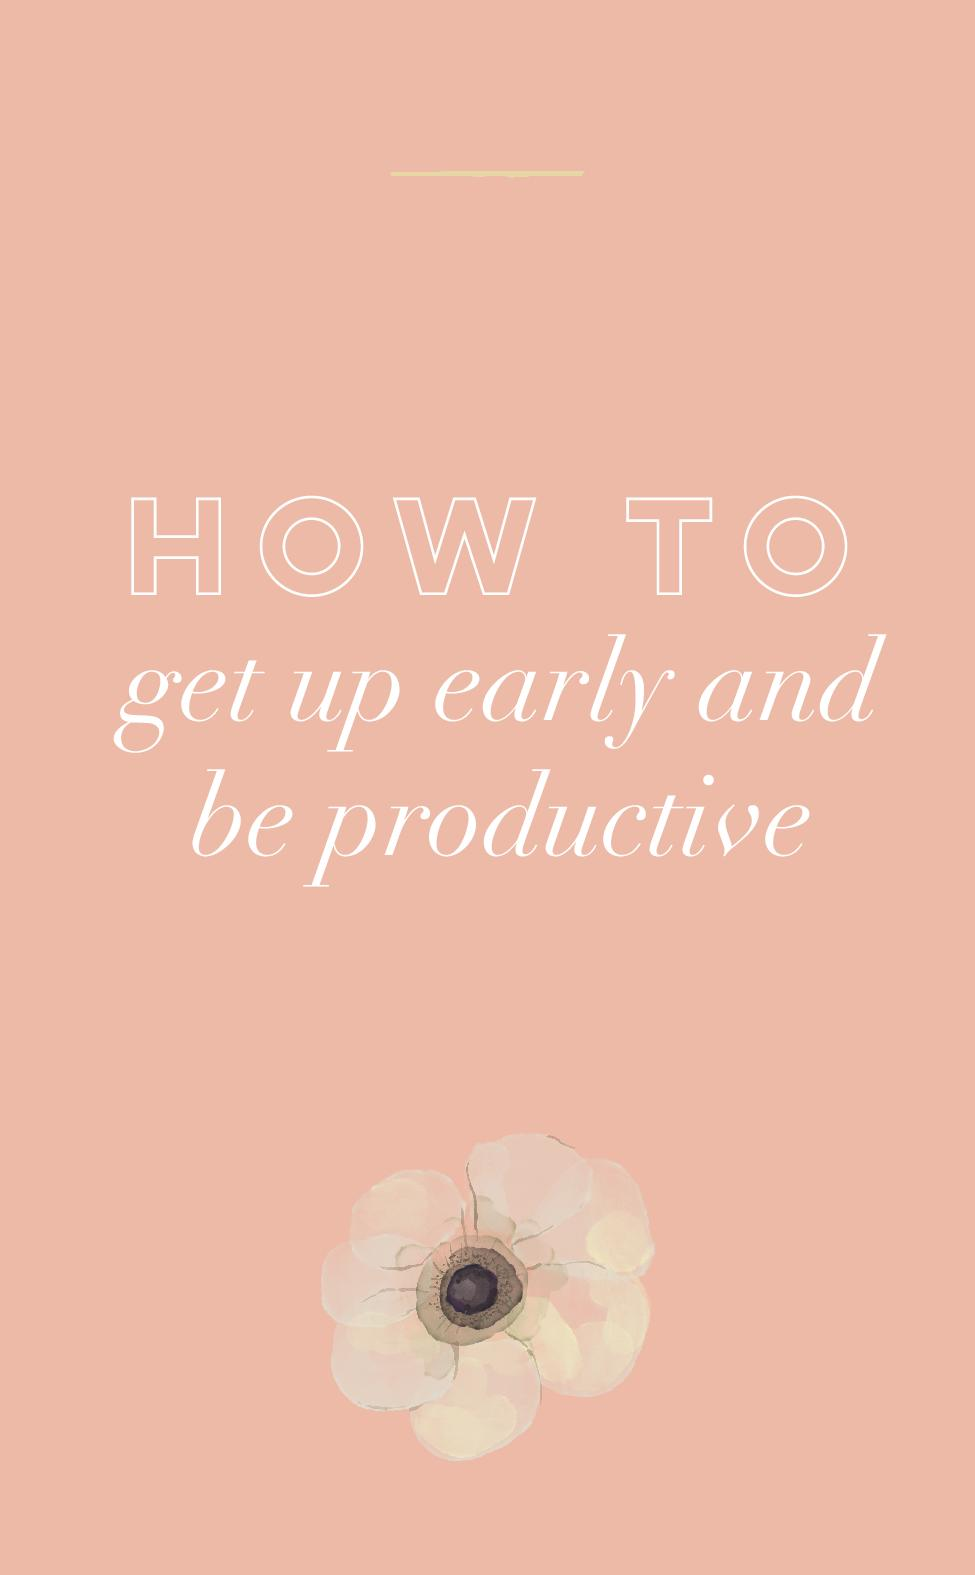 How to get up early and be productive.jpg